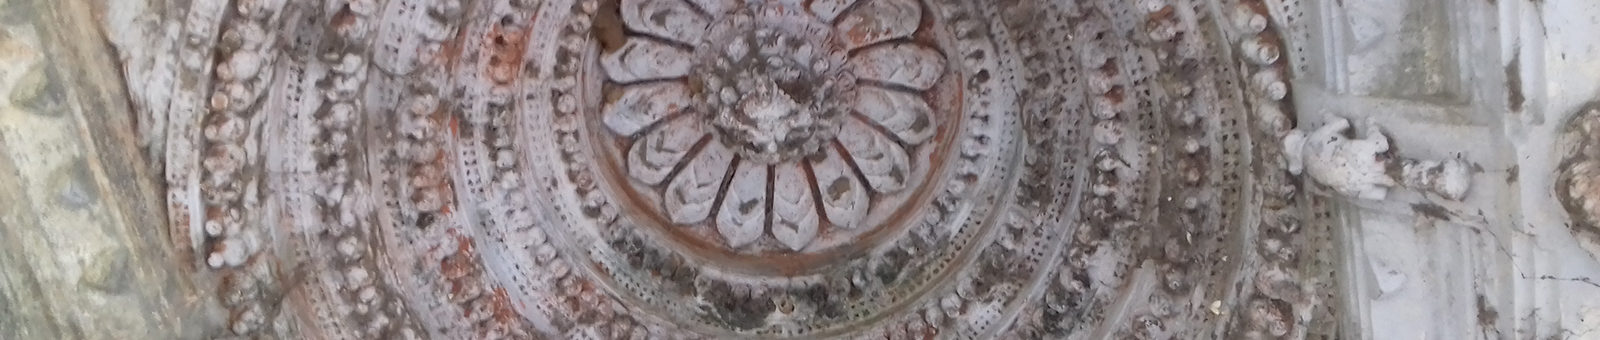 Intricate Interior carvings on the roof of Nirmaljhar temple